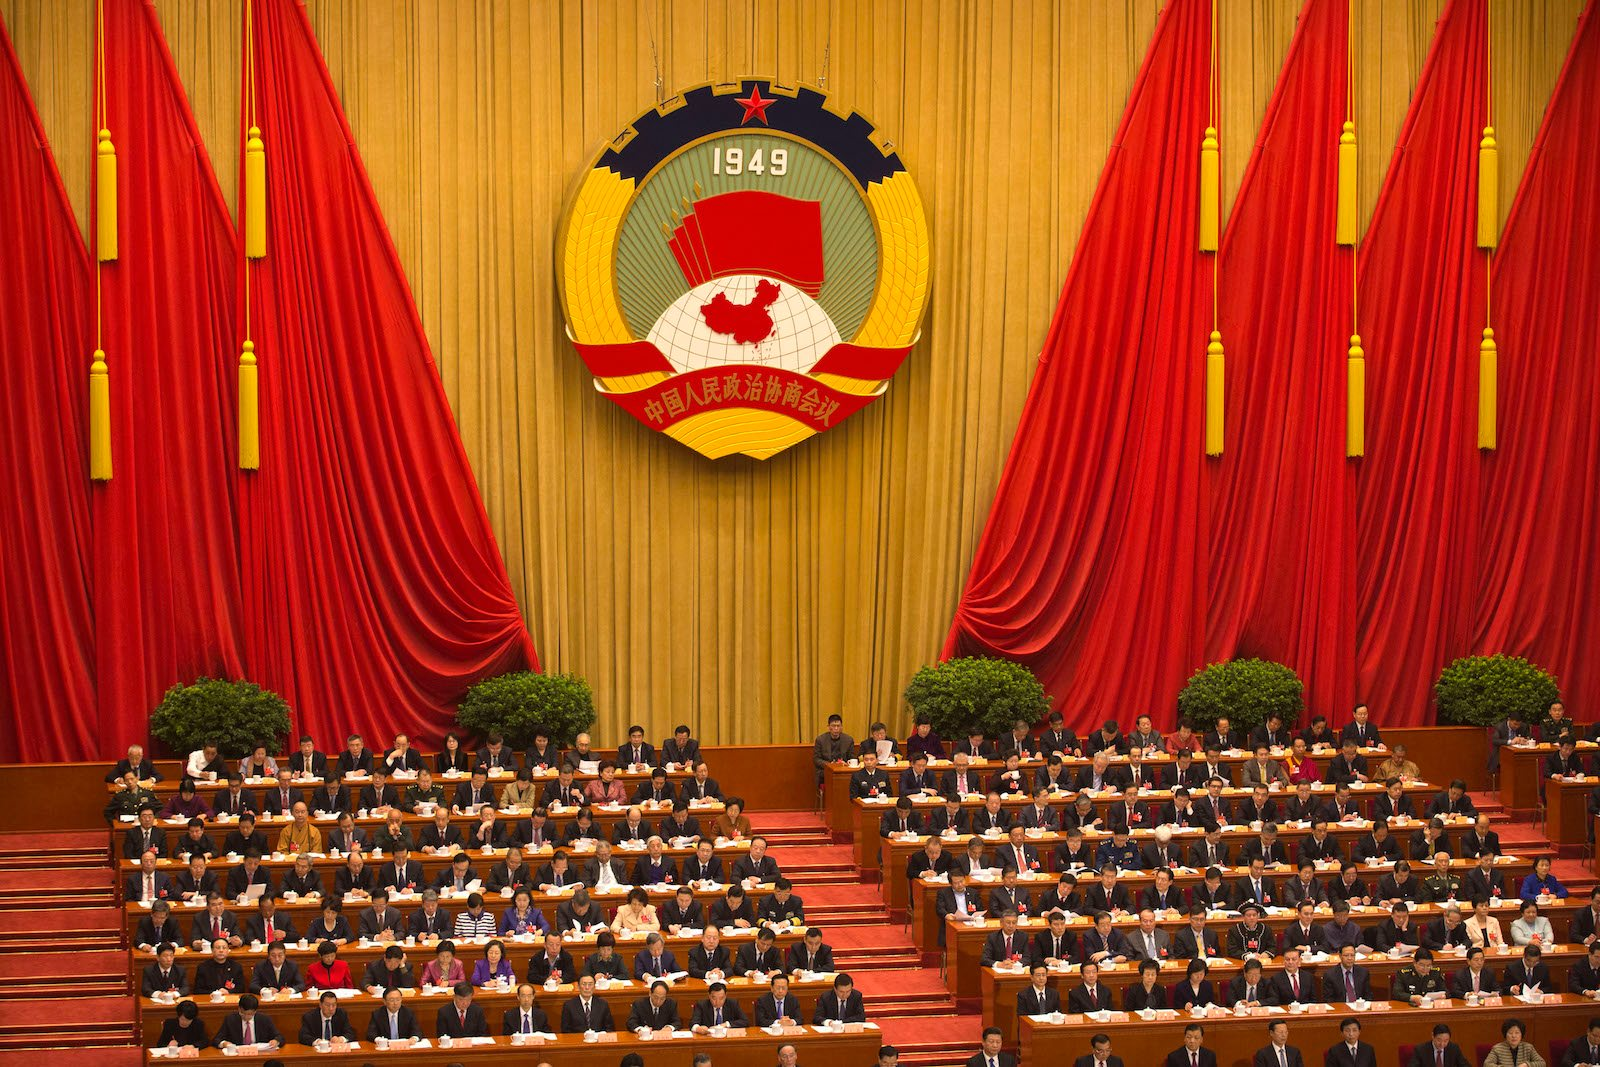 The opening session of the Chinese People's Political Consultative Conference at Beijing's Great Hall of the People, March 3, 2016